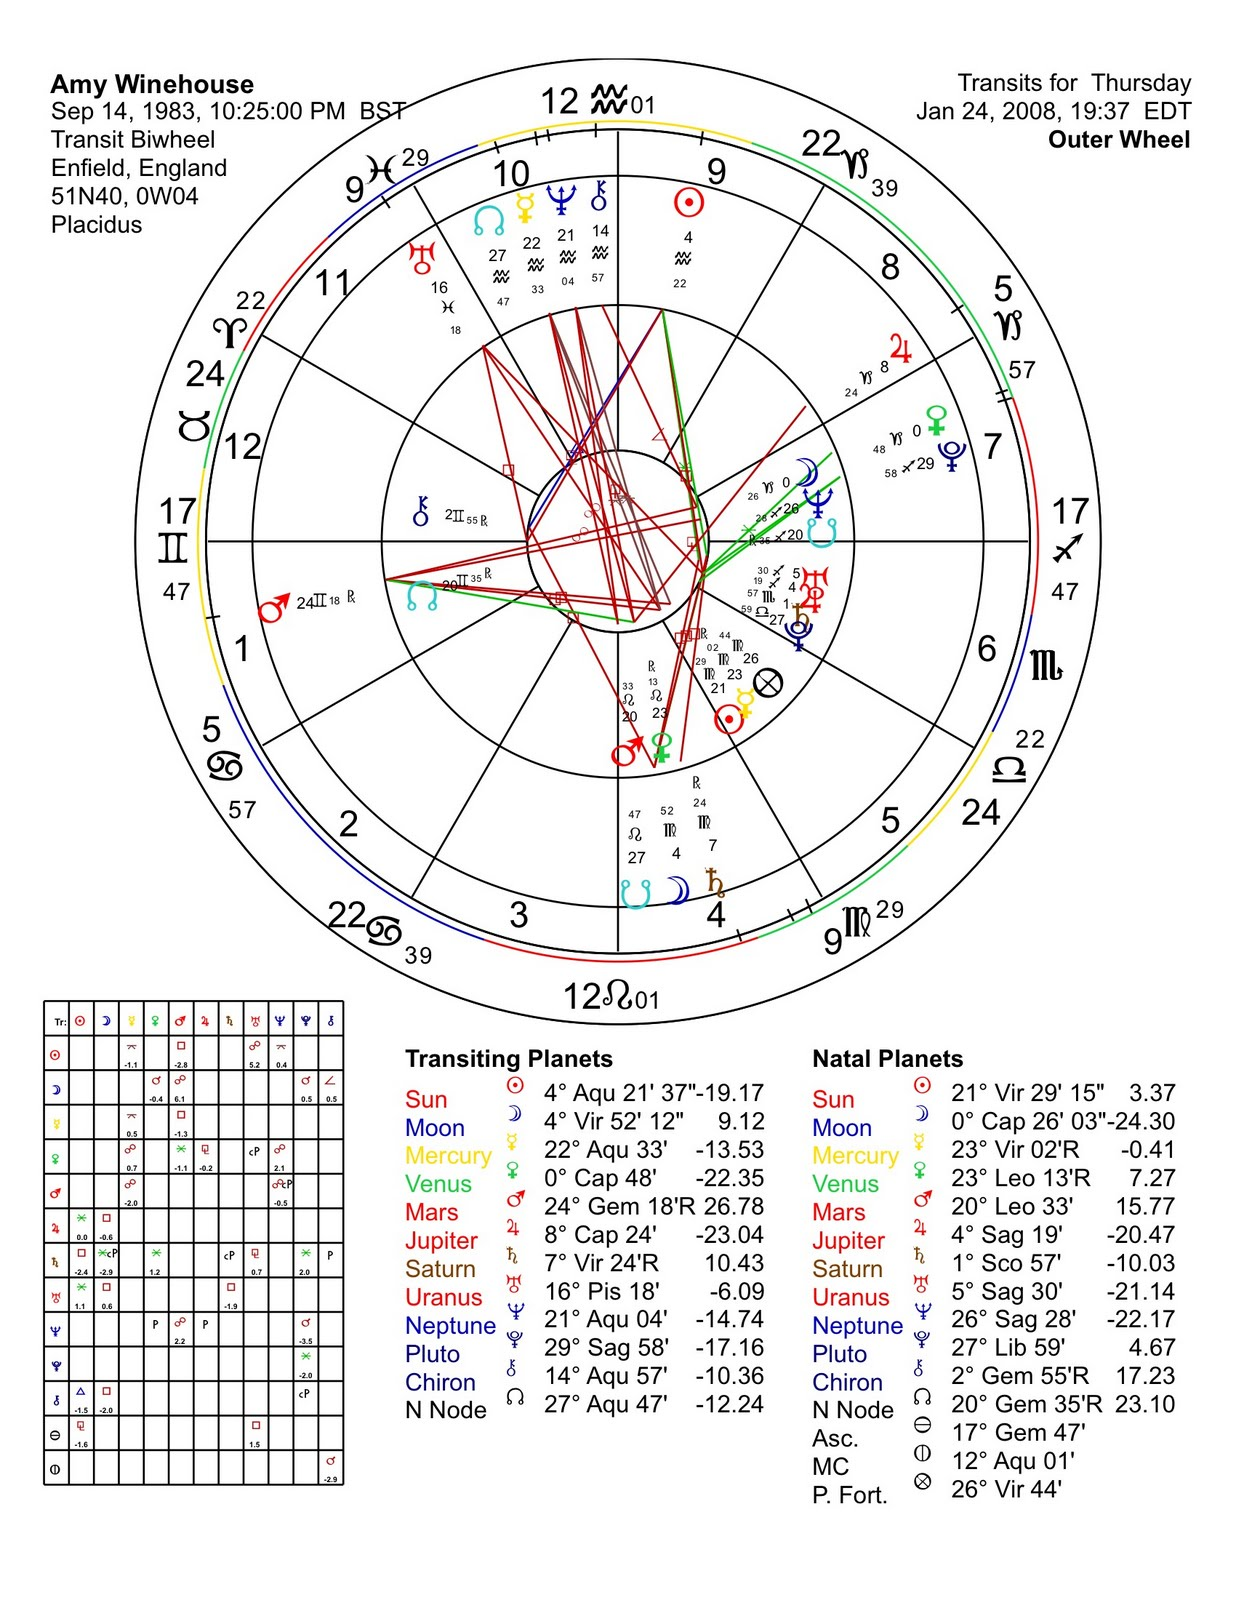 Amaizing journeys astrology amy winehouse shooting star amys chart for this day shows a snapshot of her natal charts leading planet mars transiting her 1st house of self nvjuhfo Images